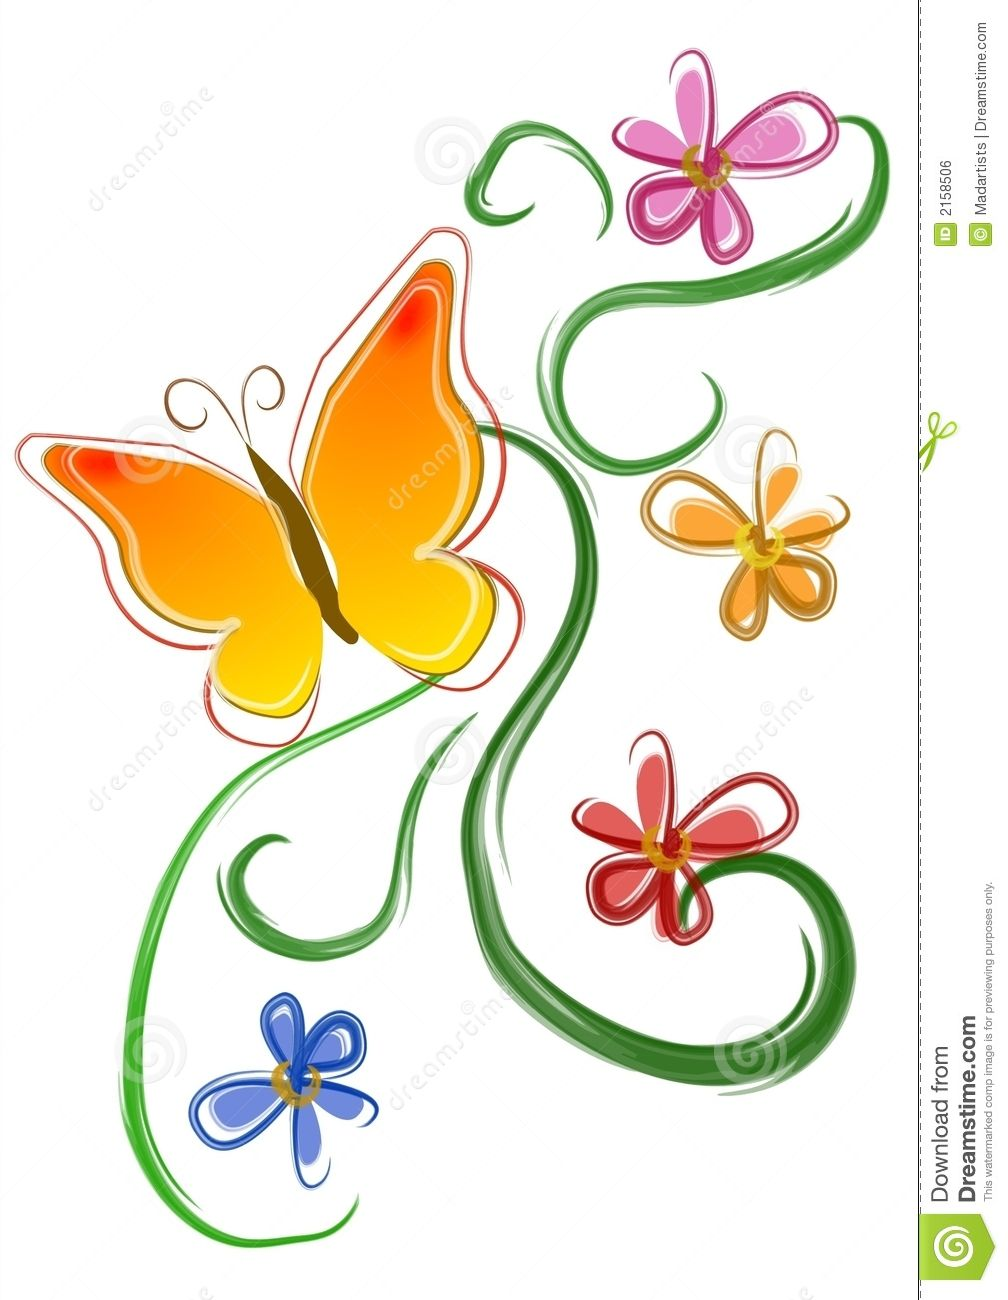 Flowers clip art royalty. Flower clipart butterfly